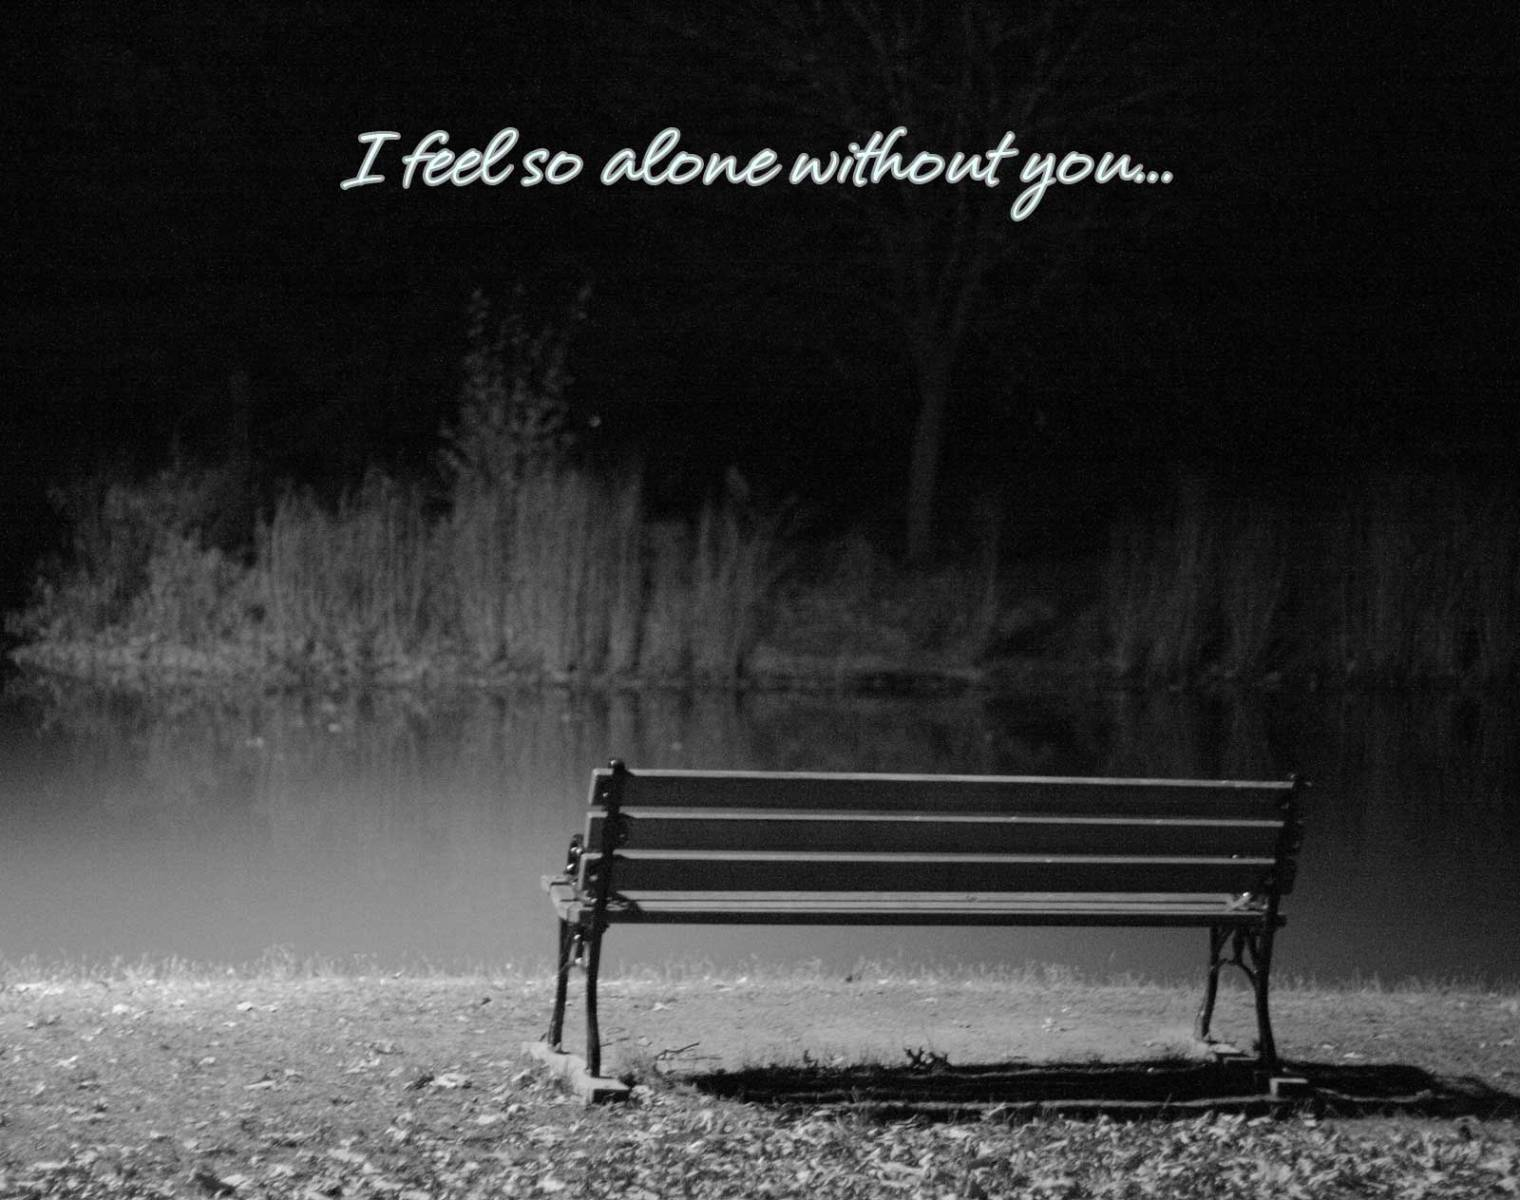 Sad Love Quotes The worst feeling in the world is knowing you did the best you could and it still wasn t good enough